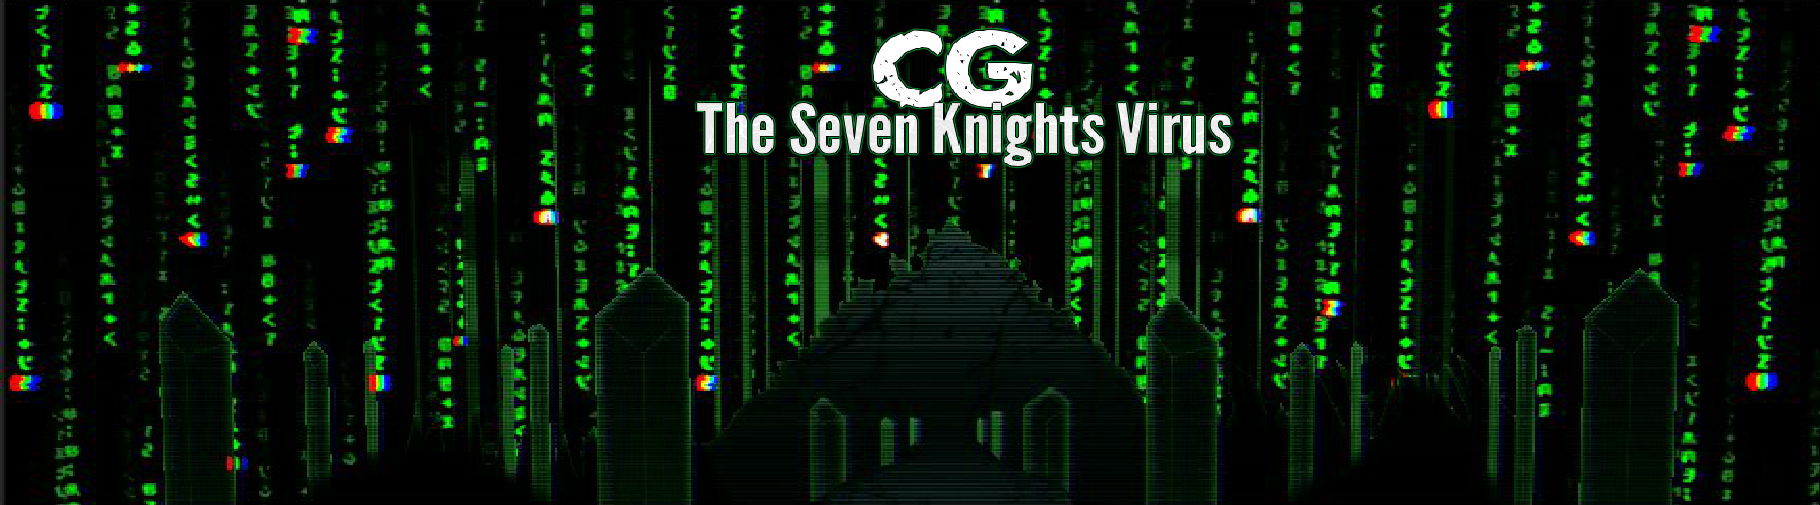 CG the Seven Knights Virus